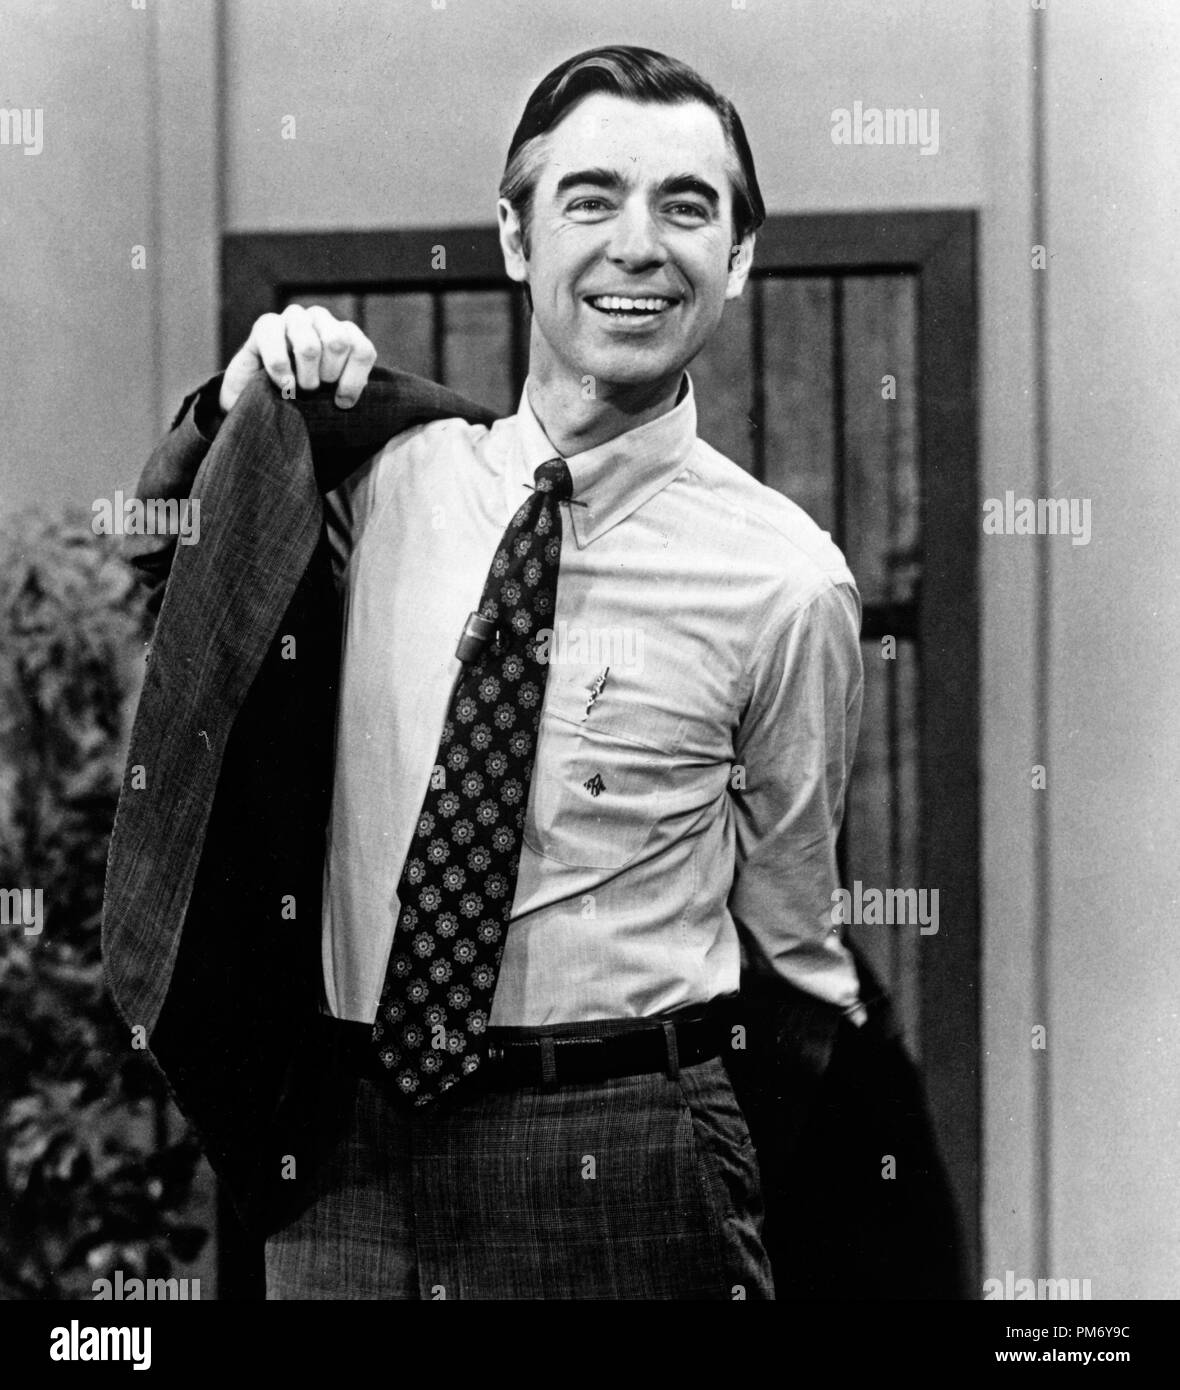 Mister Rogers High Resolution Stock Photography And Images Alamy